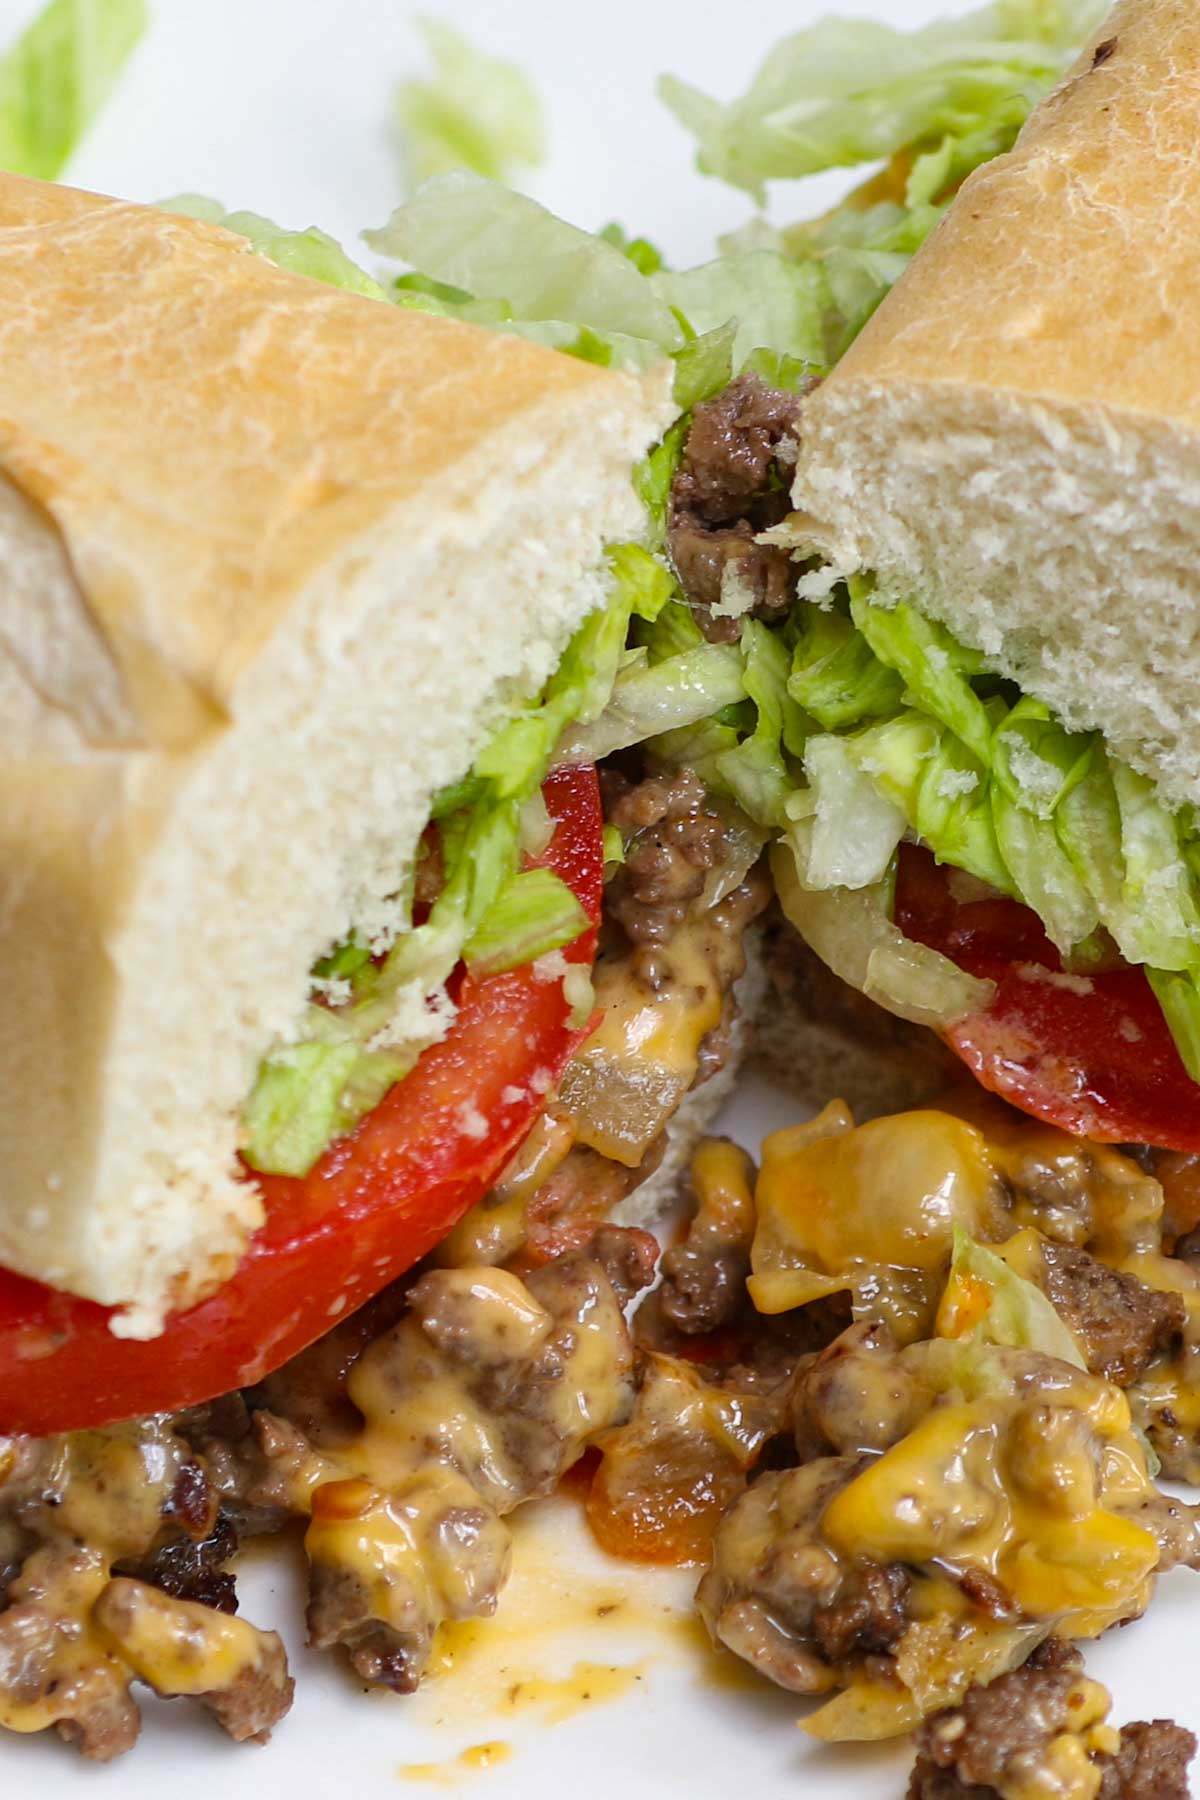 New York City's Chopped Cheese Sandwich with chopped beef burgers, melted gooey cheese, caramelized onions, topped with tomatoes and shredded lettuces, and hugged by a toasted hero roll. This is the classic way to make the iconic NYC chopped cheese. It reminds me of Philly cheesesteak, but even better!